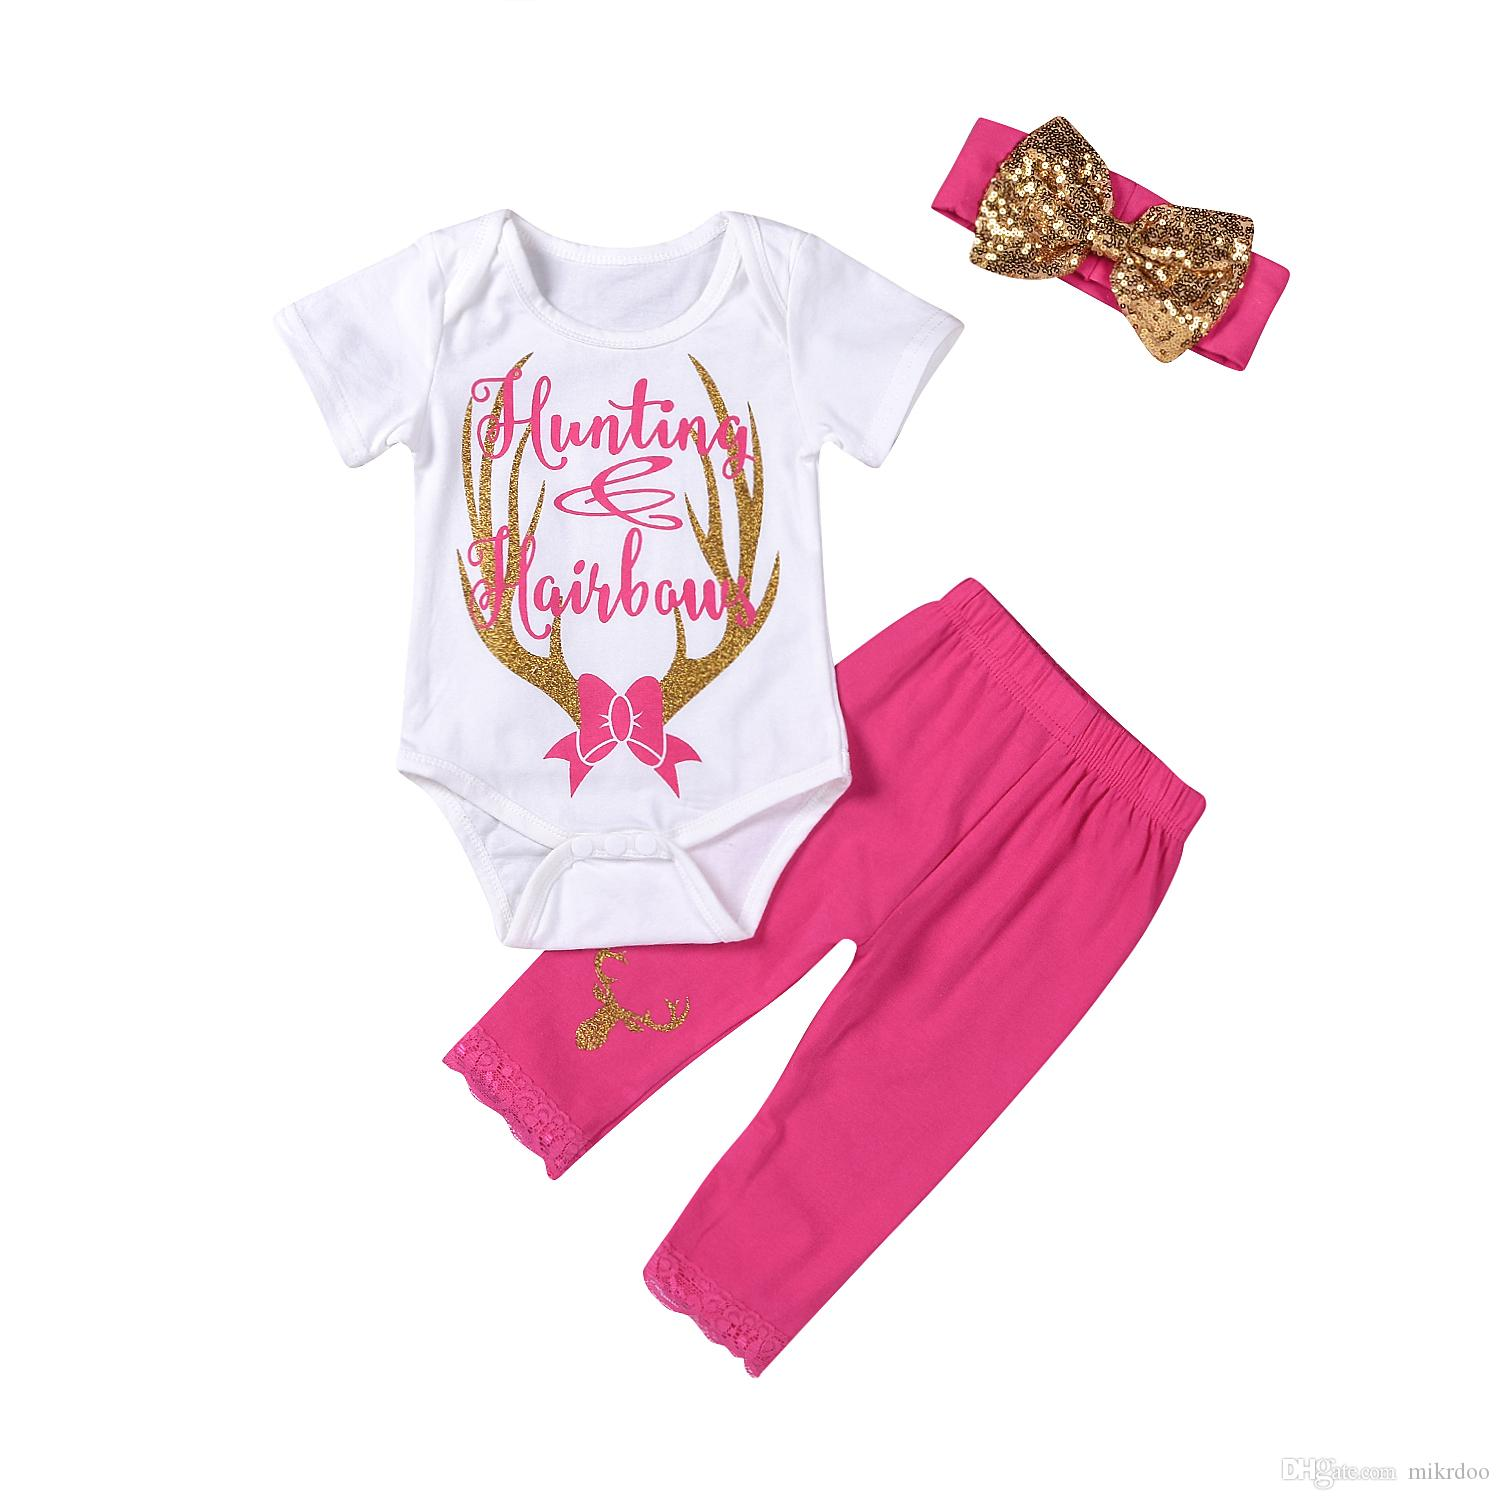 05ef89b30 2019 Mikrdoo Baby Hot Christmas Clothes Suits Kids Girl Deer Hunting Romper  Pink Lace Pants Headband Outfits Sweet Top Cotton Cute Set 0 24M From  Mikrdoo, ...